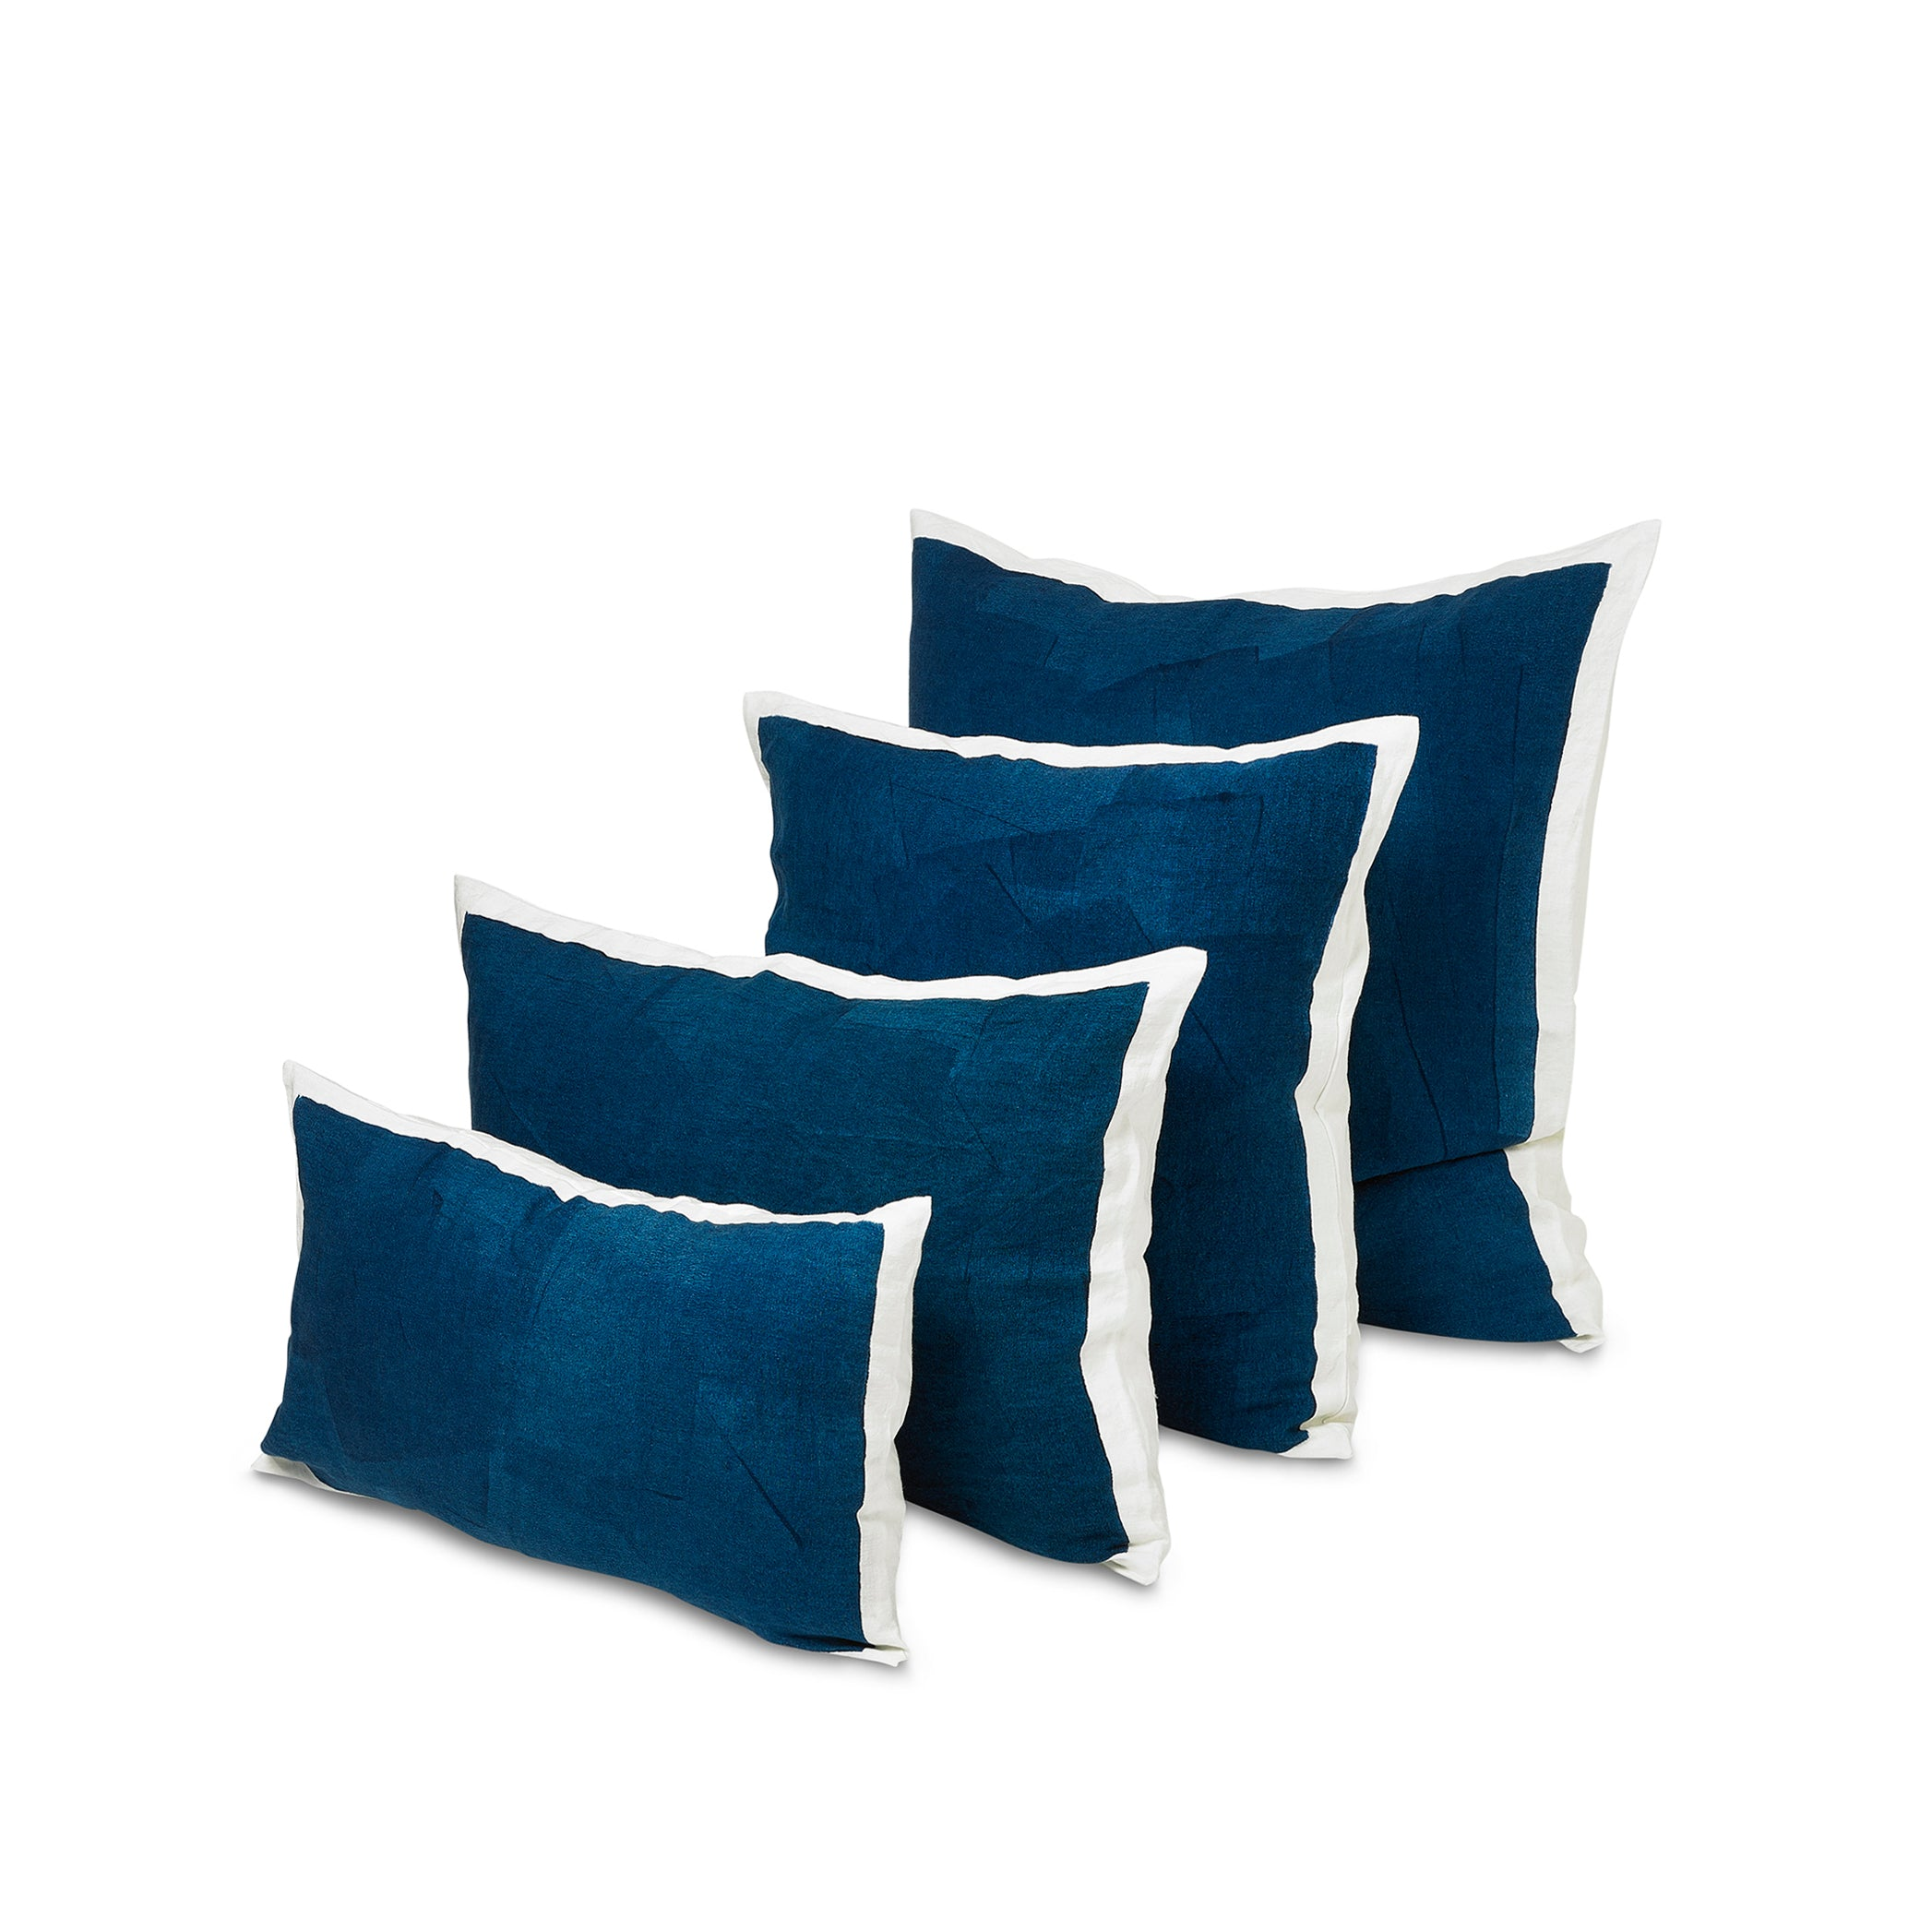 Hand Painted Linen Cushion in Midnight Blue, 60cm x 40cm